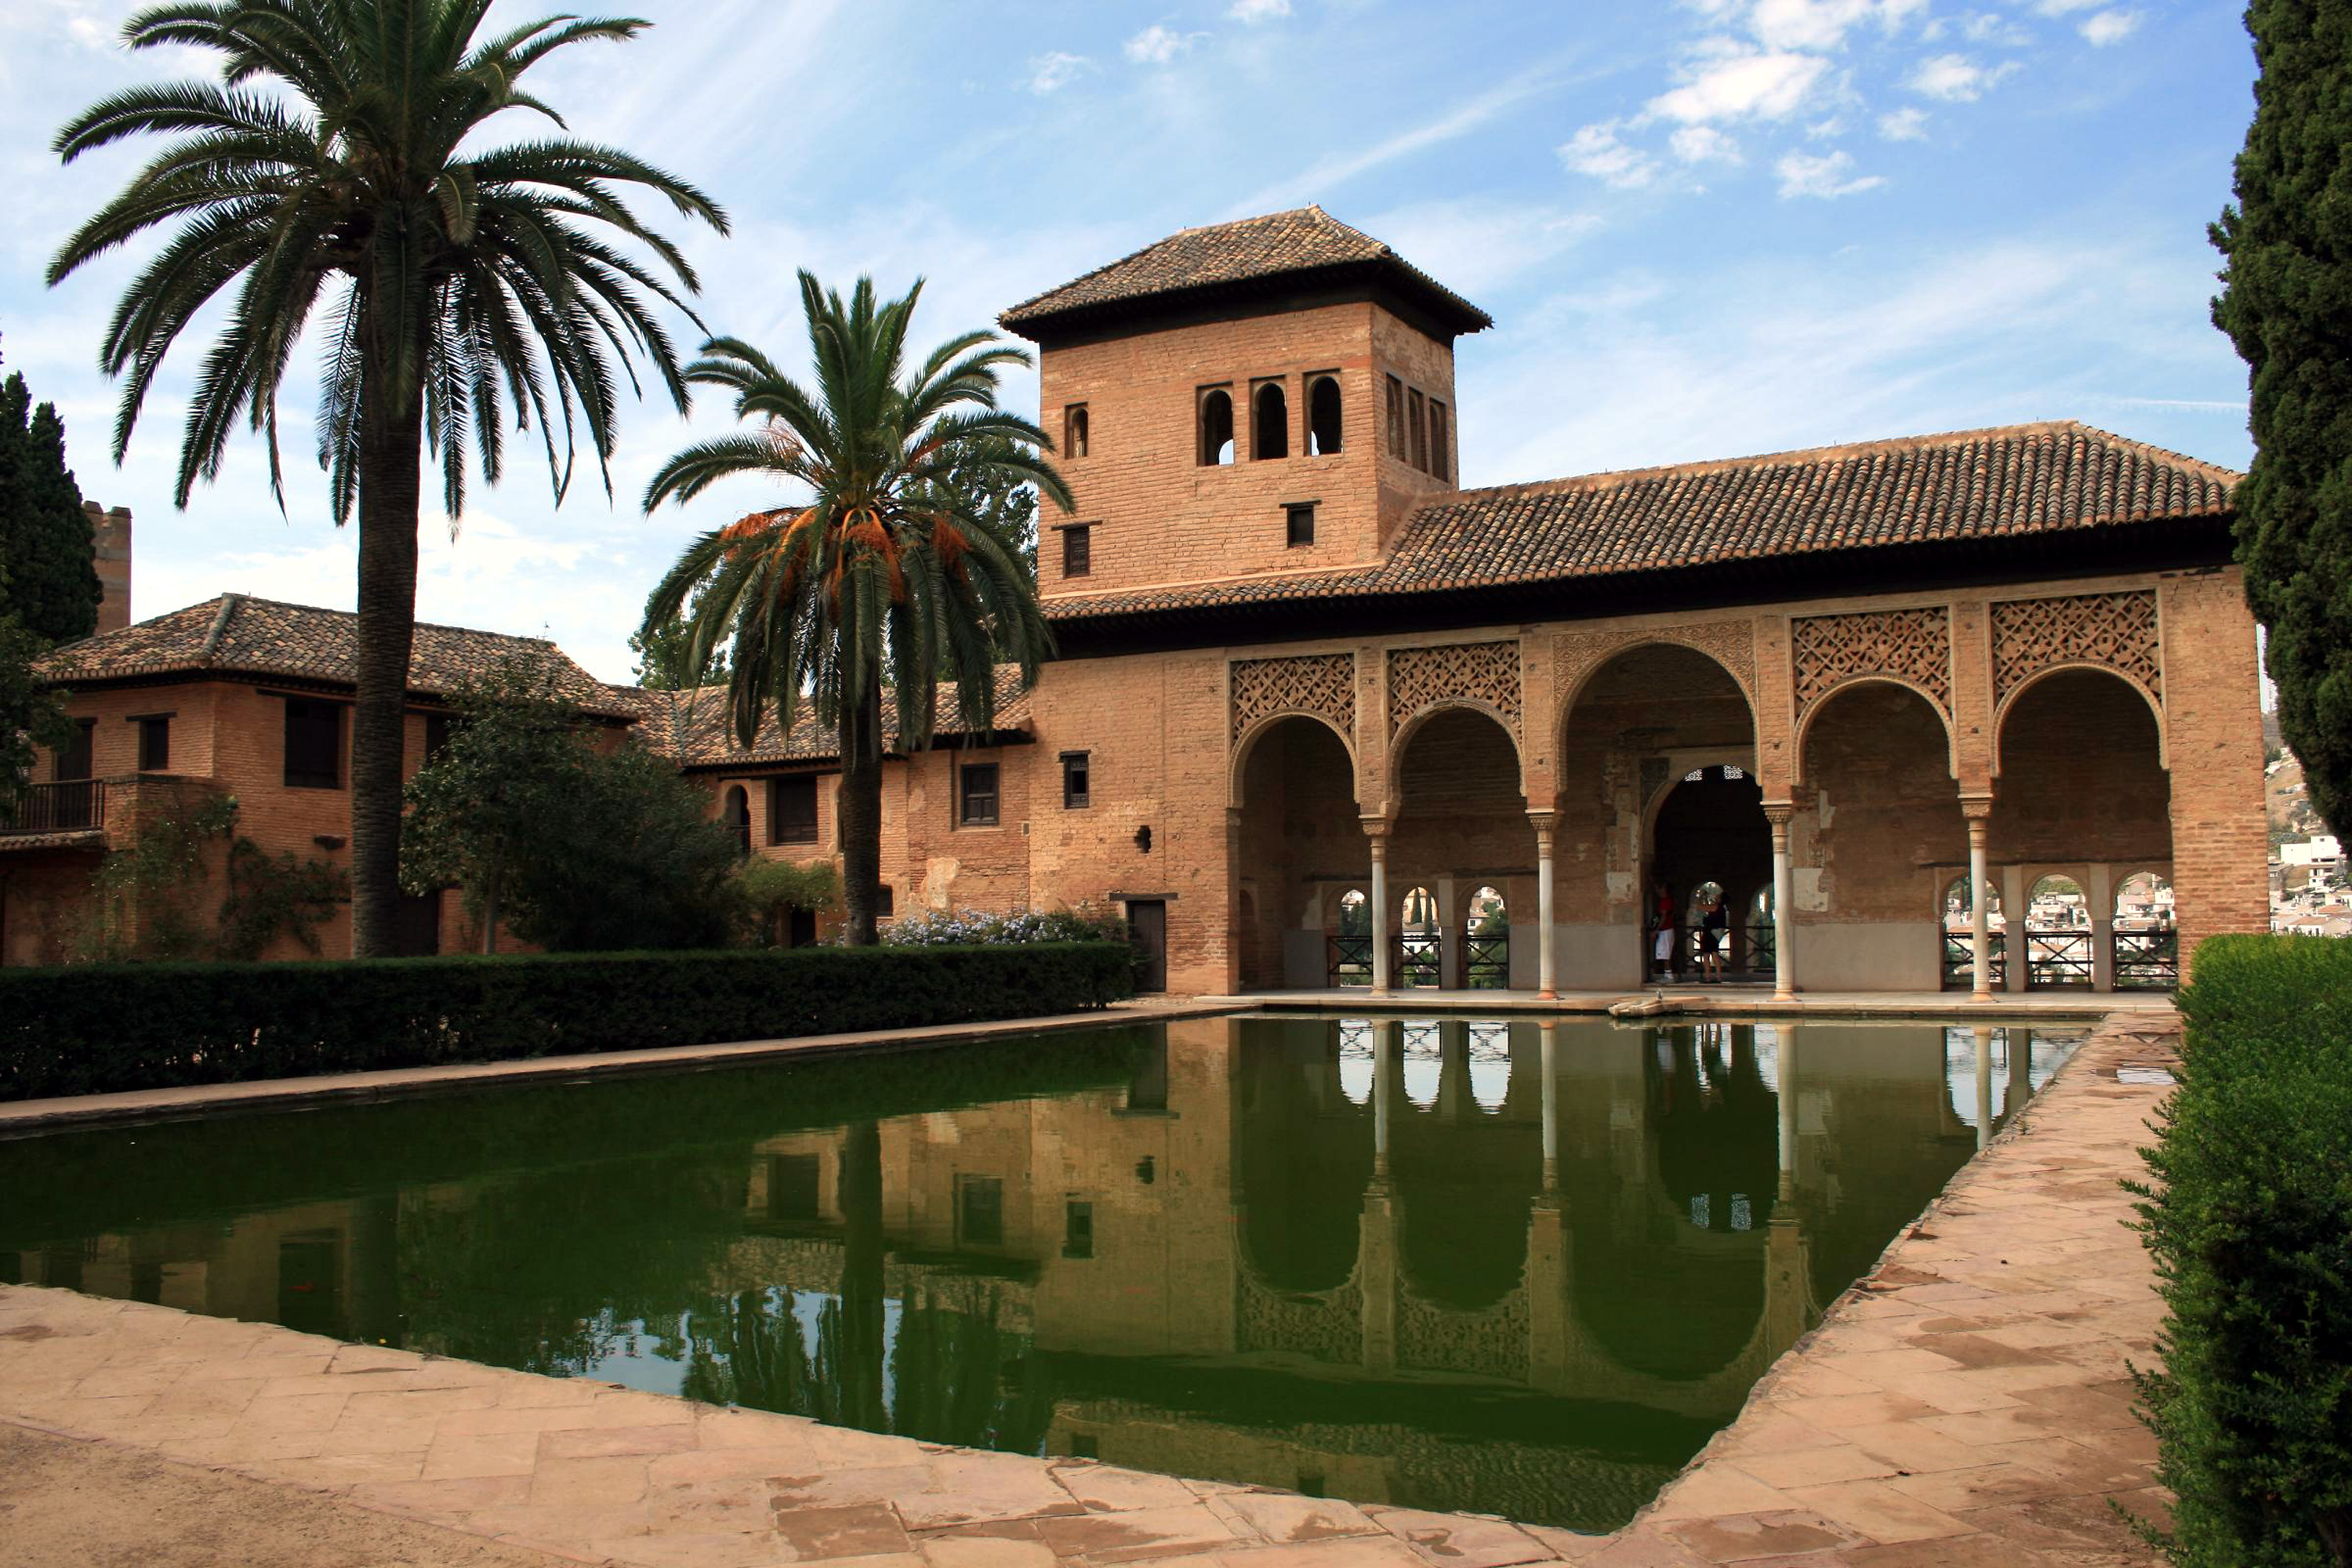 https://i1.wp.com/upload.wikimedia.org/wikipedia/commons/e/e1/Alhambra_-_Granada_1.jpg